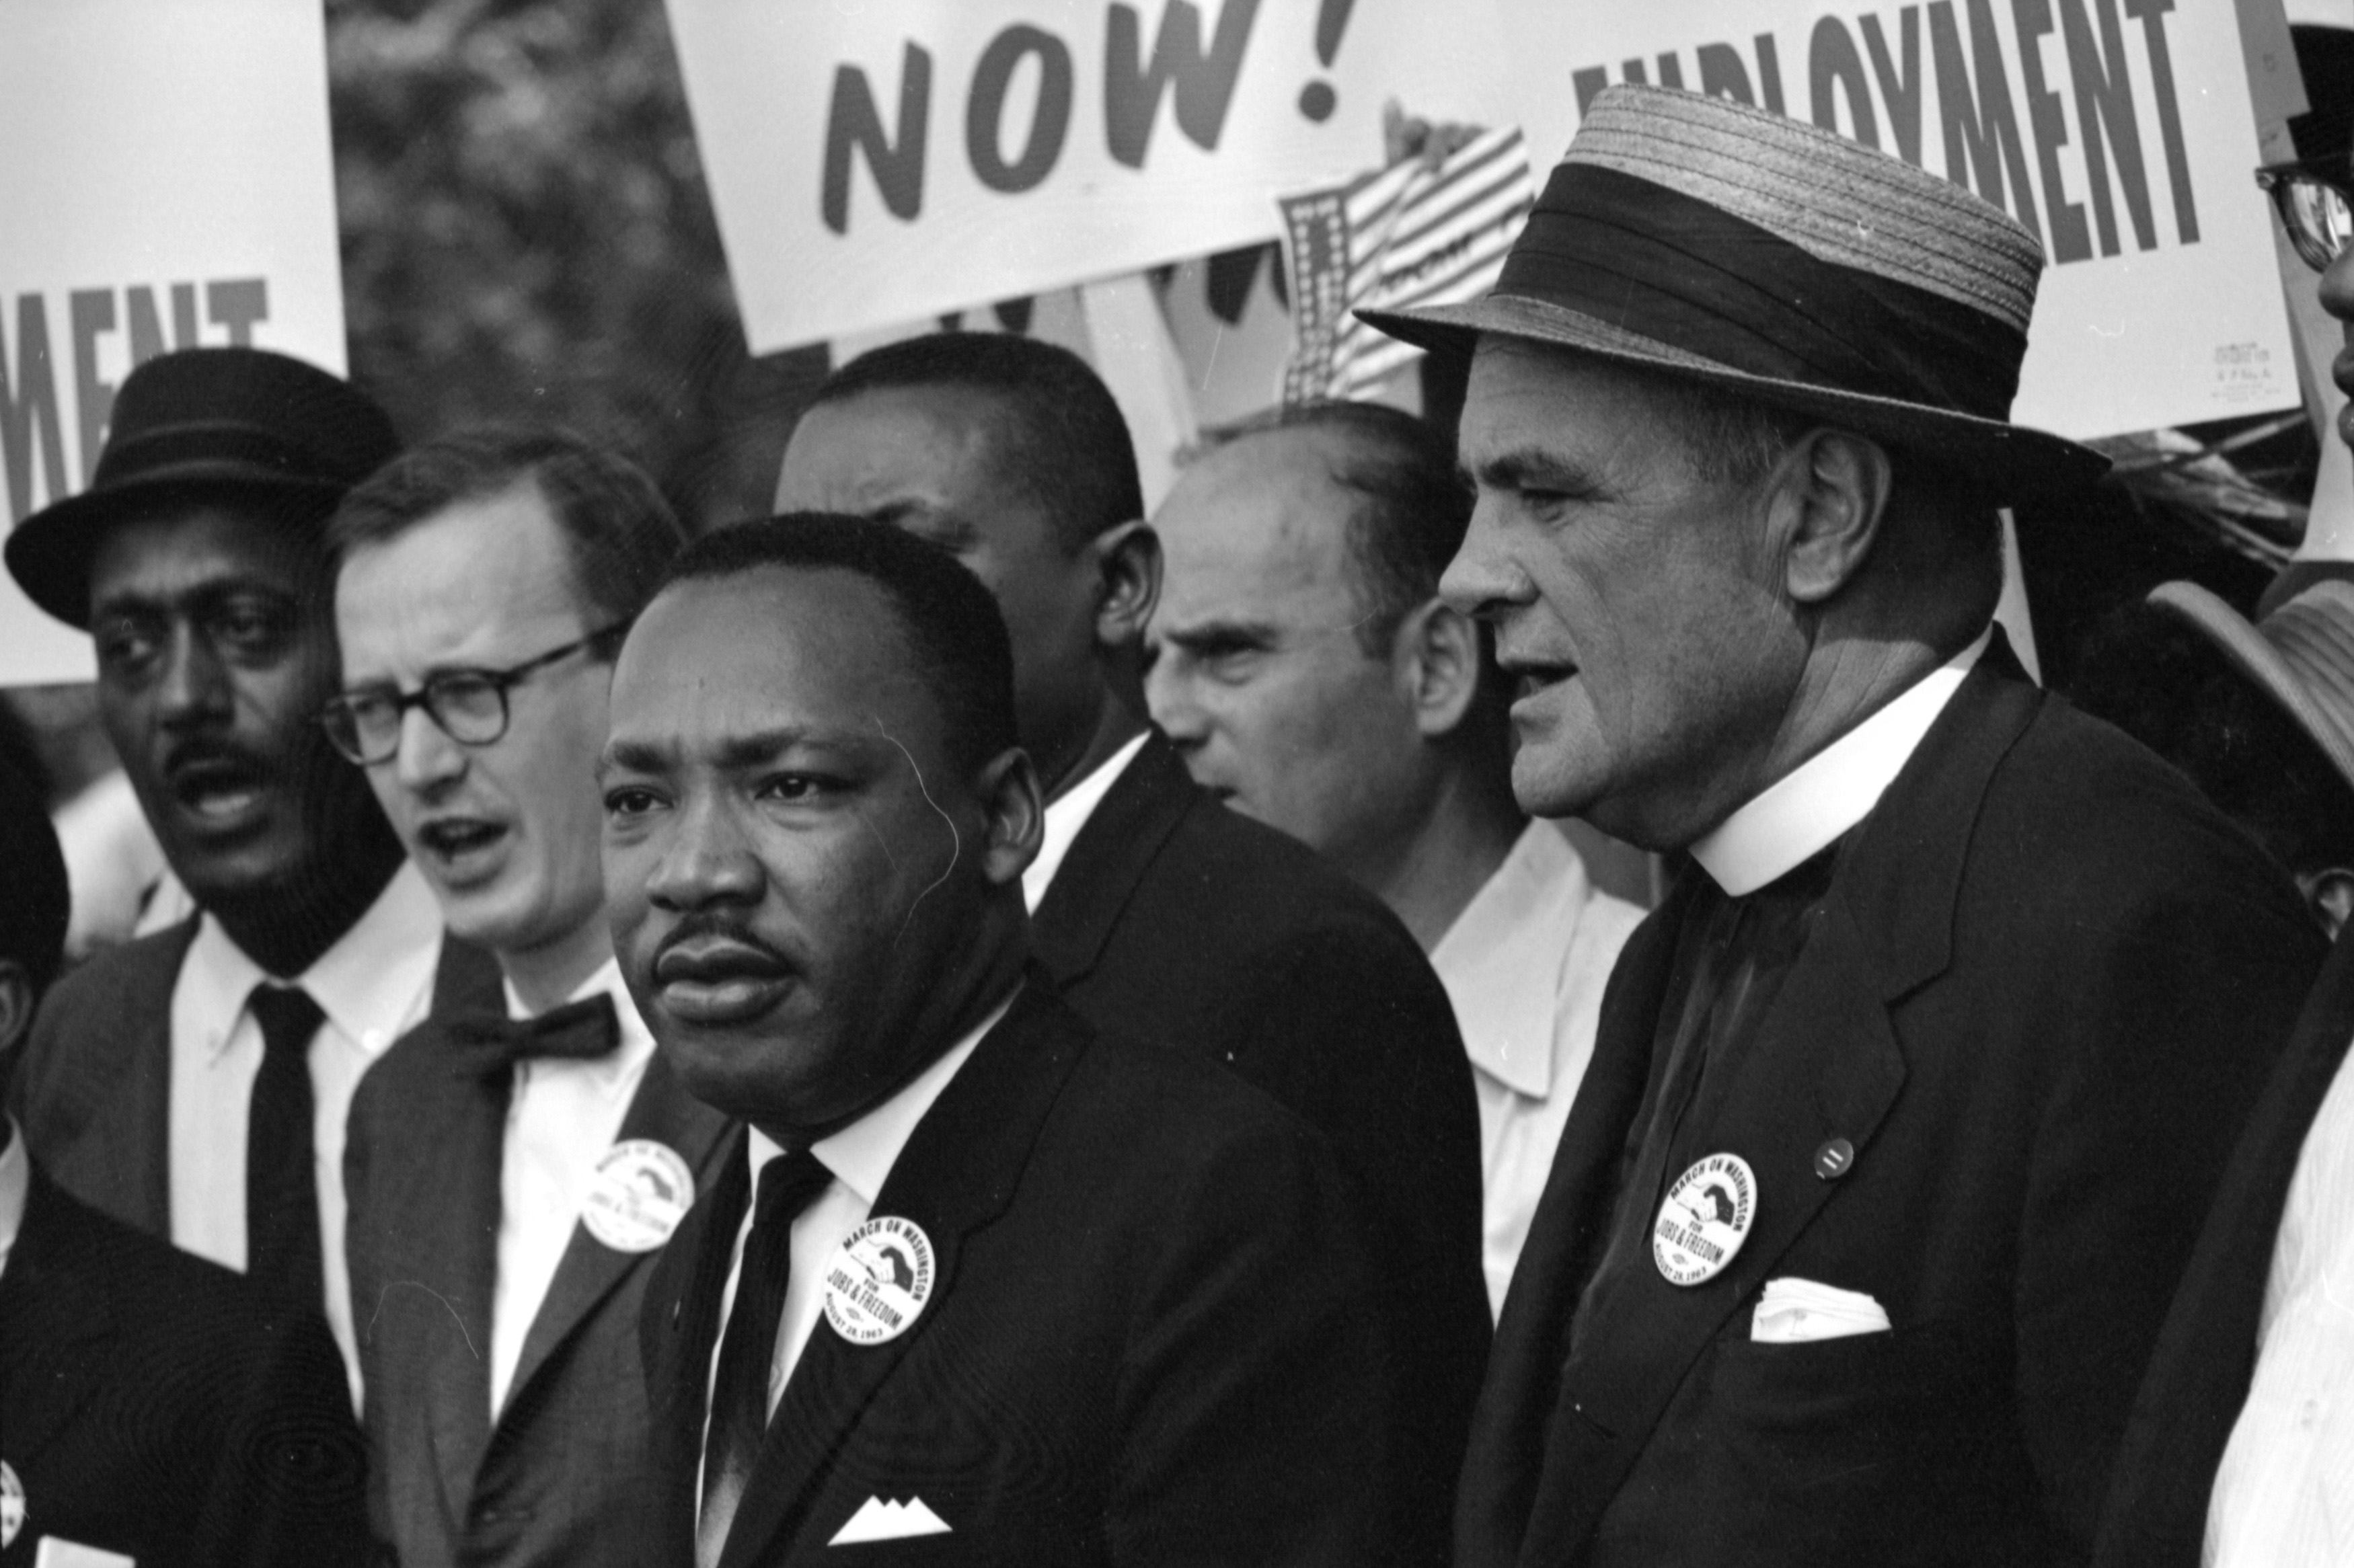 Should we still call Martin Luther King a Dr. even though he cheated on his dissertation?